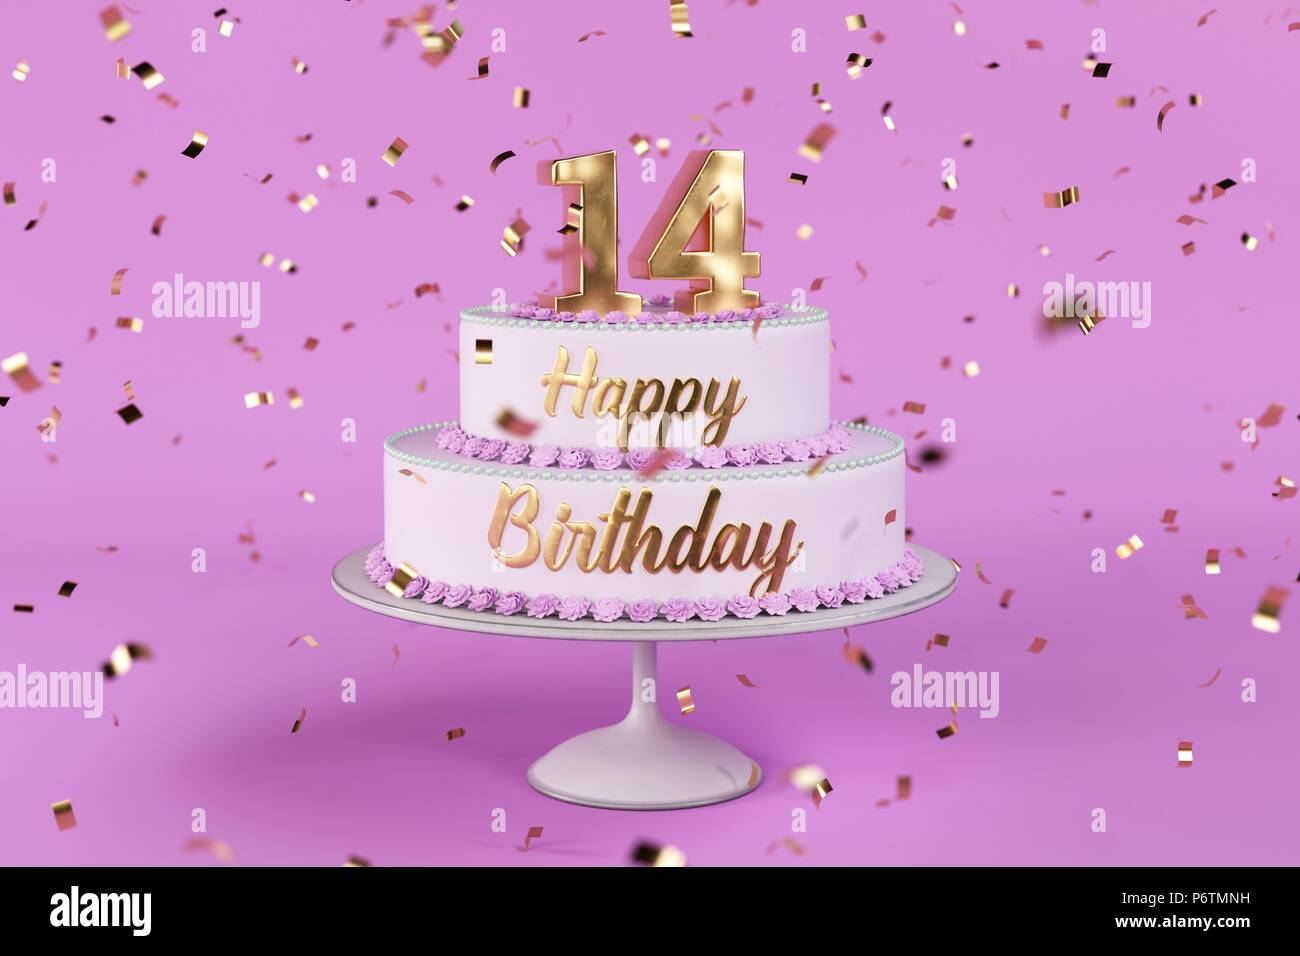 Astounding Birthday Cake With Golden Letters And Numer 14 On Top Stock Photo Funny Birthday Cards Online Alyptdamsfinfo